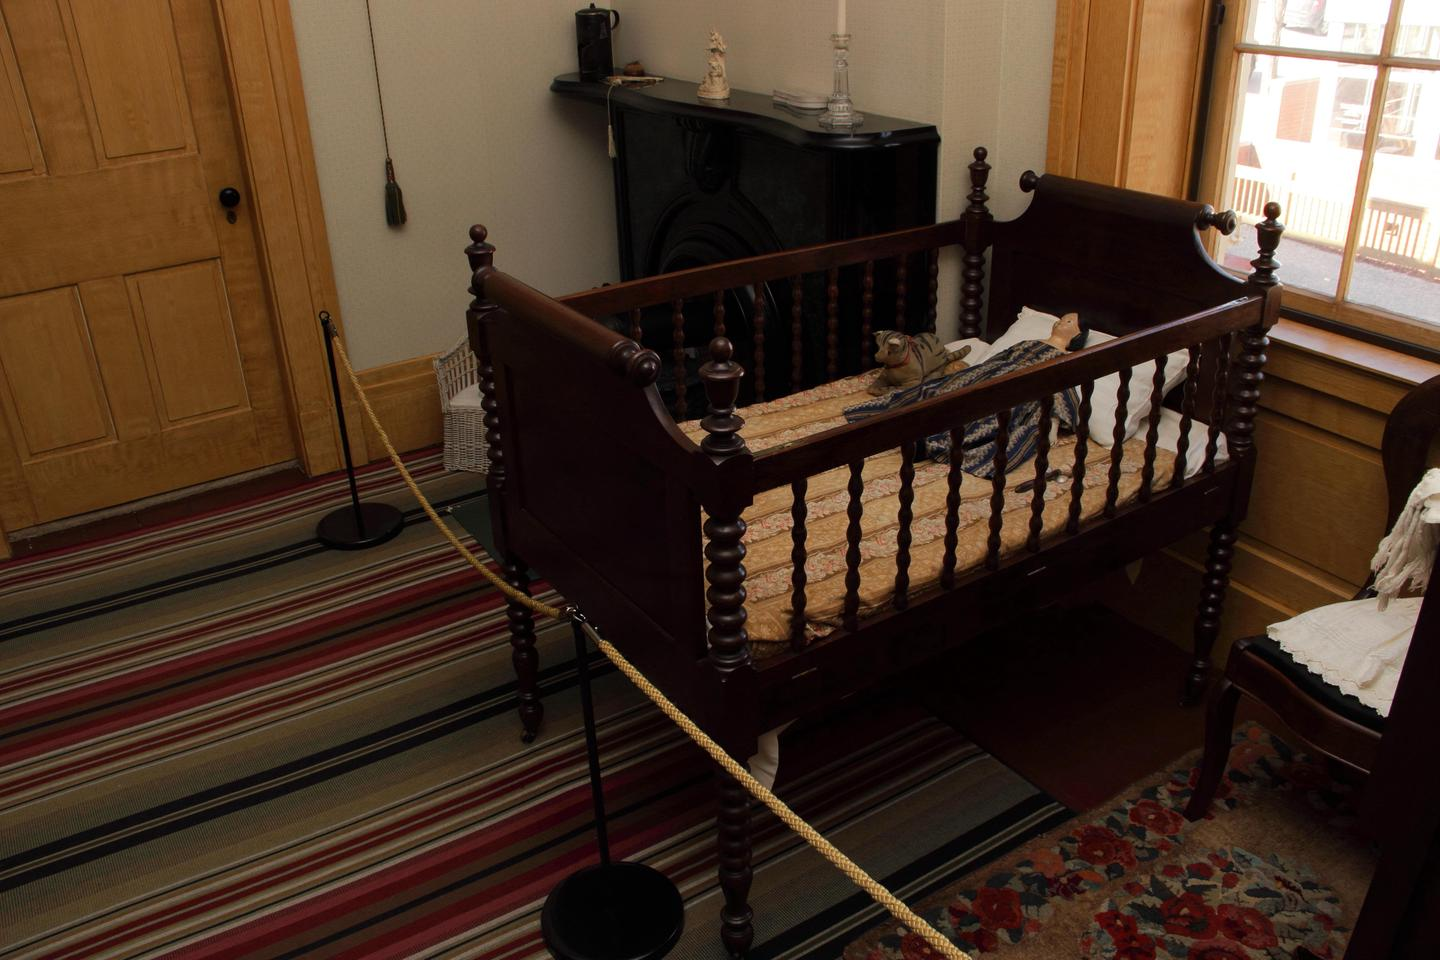 Taft's cribThe crib used by William Howard Taft when he was a baby.